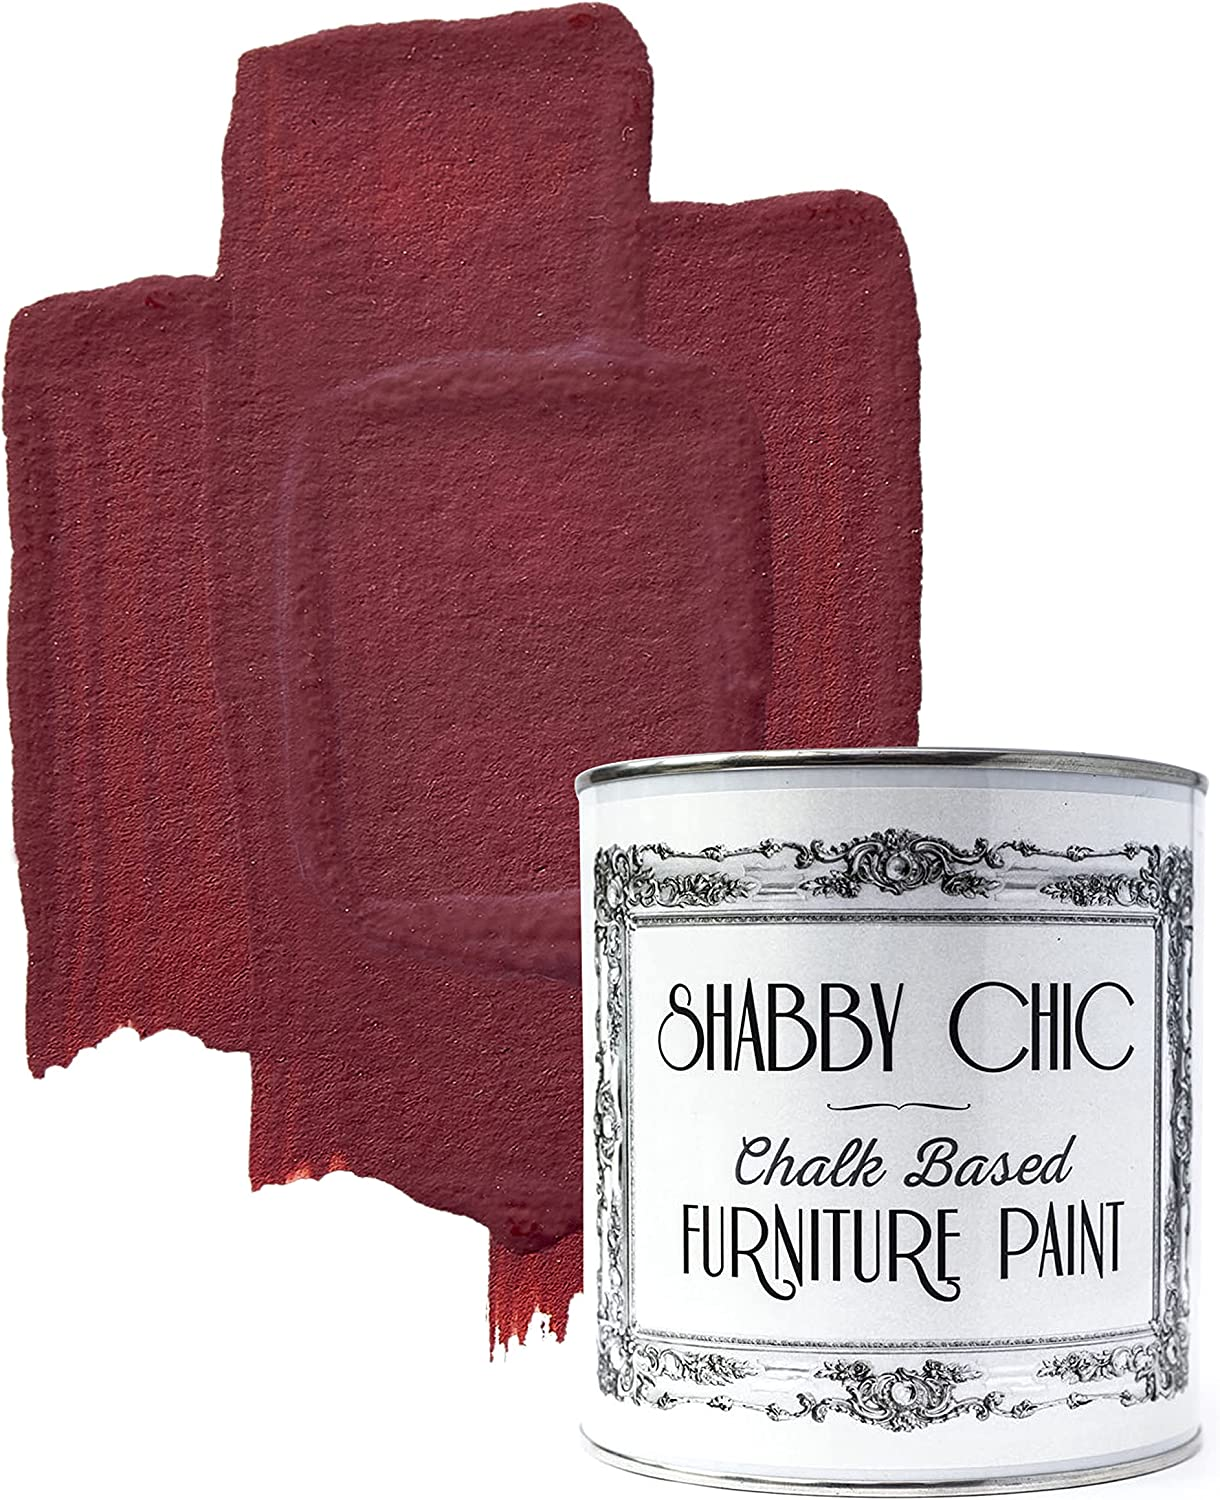 Shabby Chic Chalked Furniture Paint: Luxurious Chalk Finish Furniture and Craft Paint for Home Decor, DIY Projects, Wood Furniture - Interior Paints with Rustic Matte Finish - Liter - Nautical Red